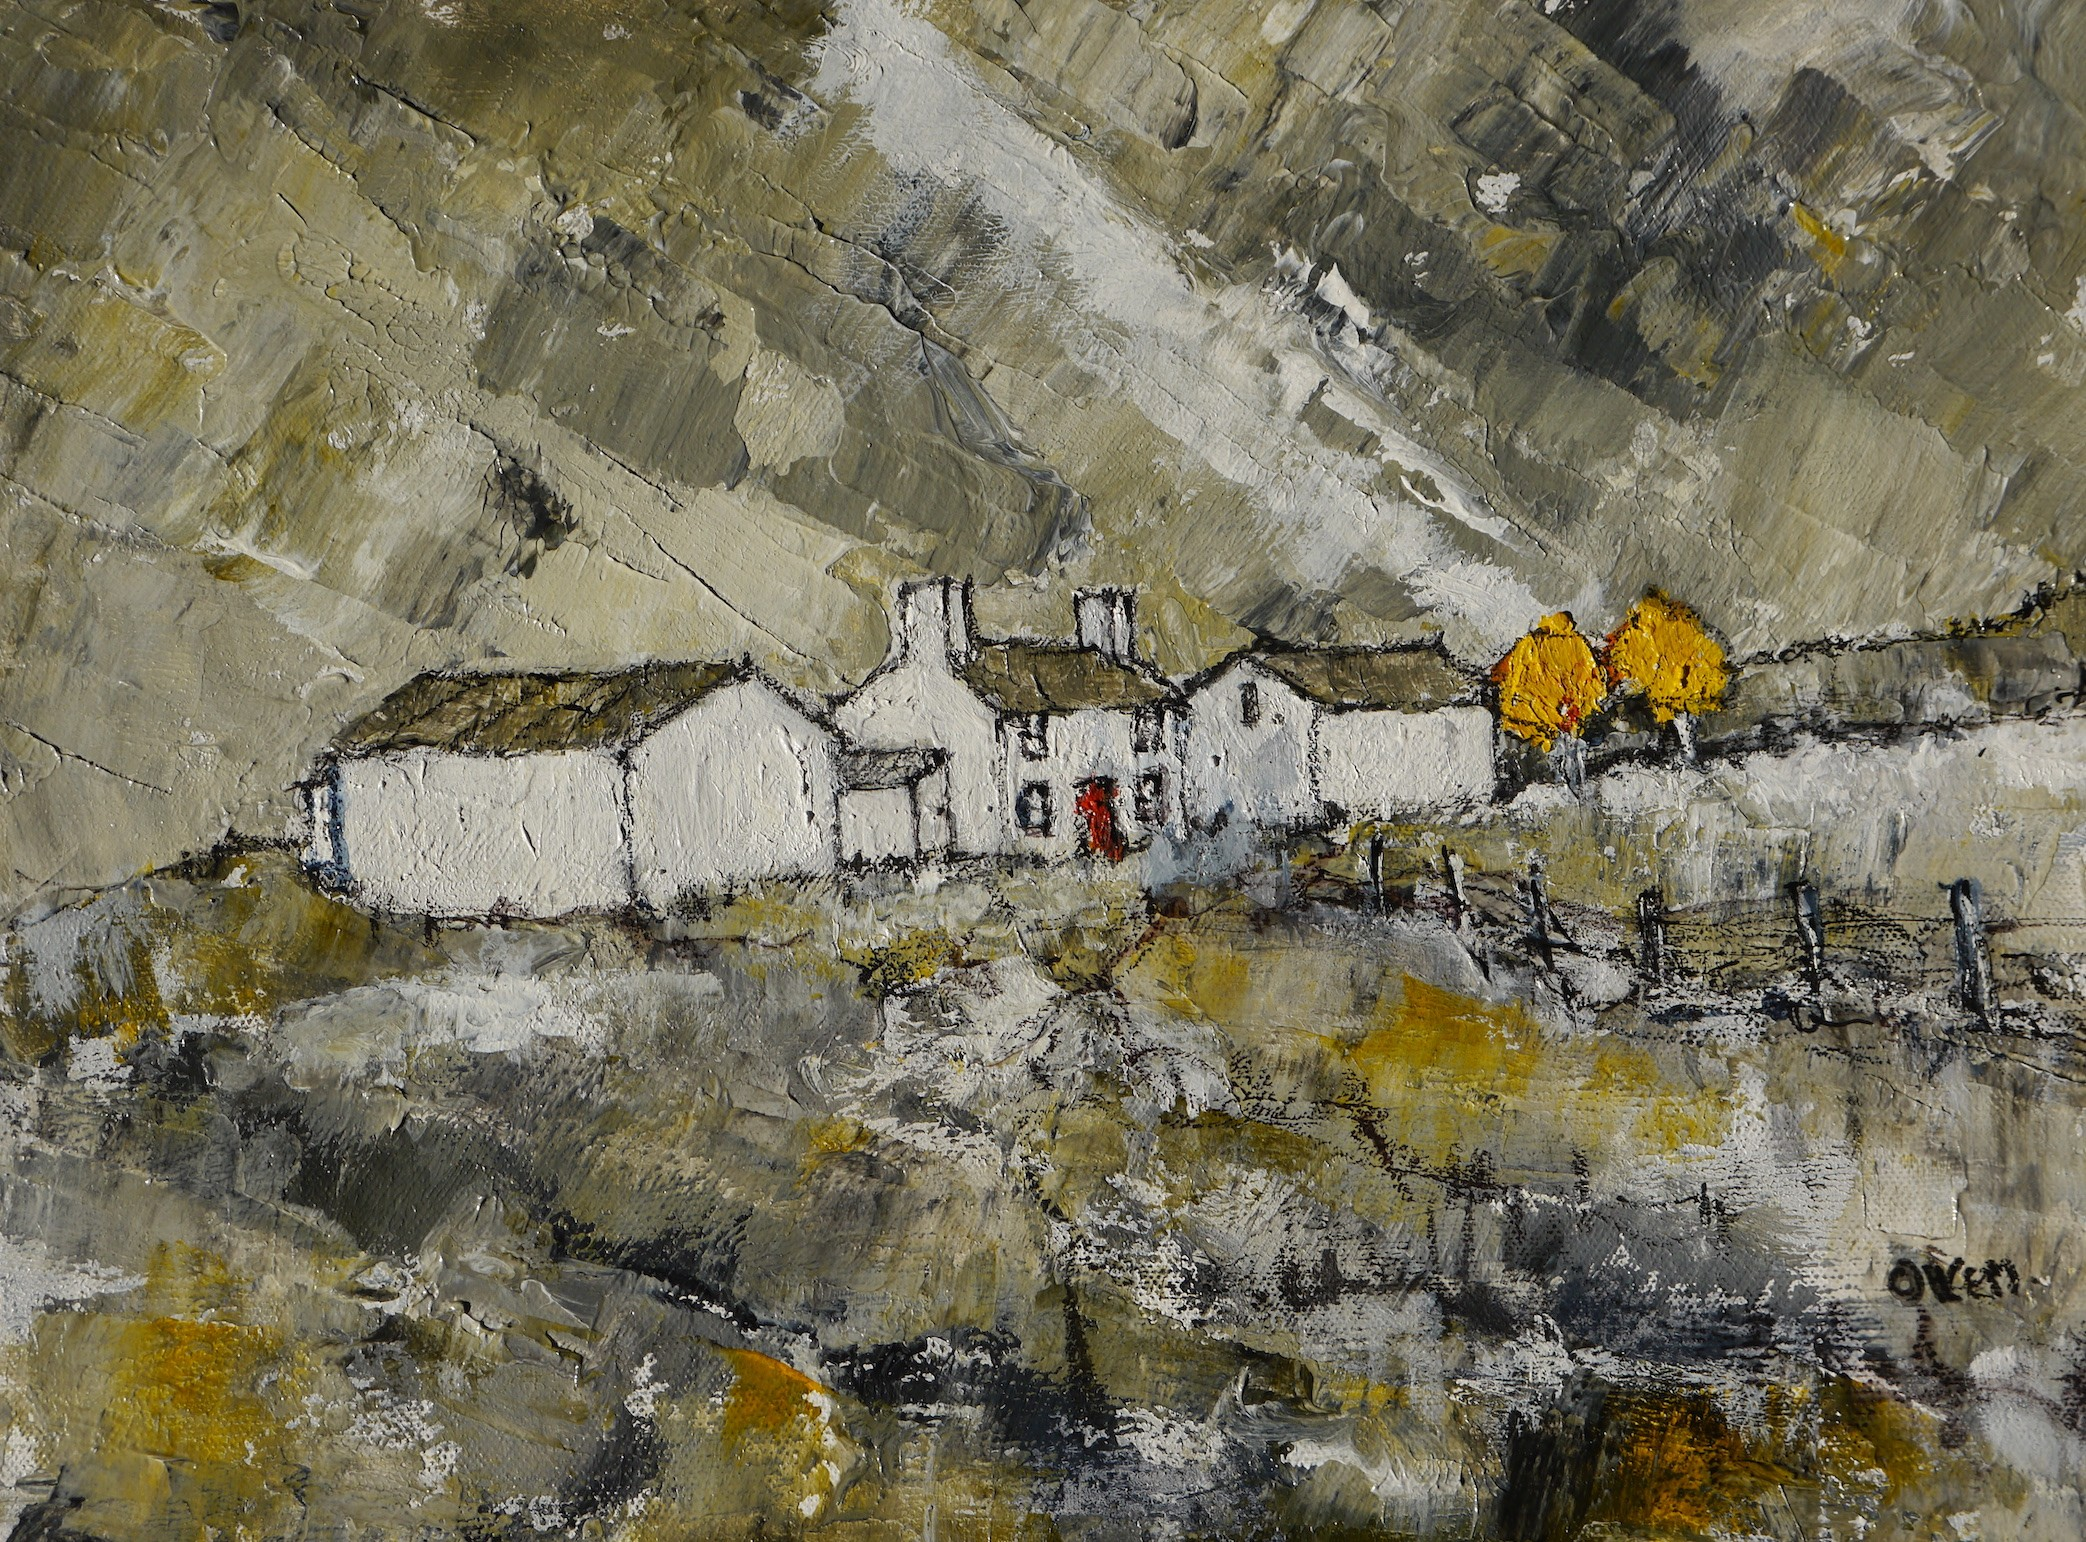 Snowdonia Farm  30x40 cm   Acrylic on Paper   MOUNTED NOT FRAMED